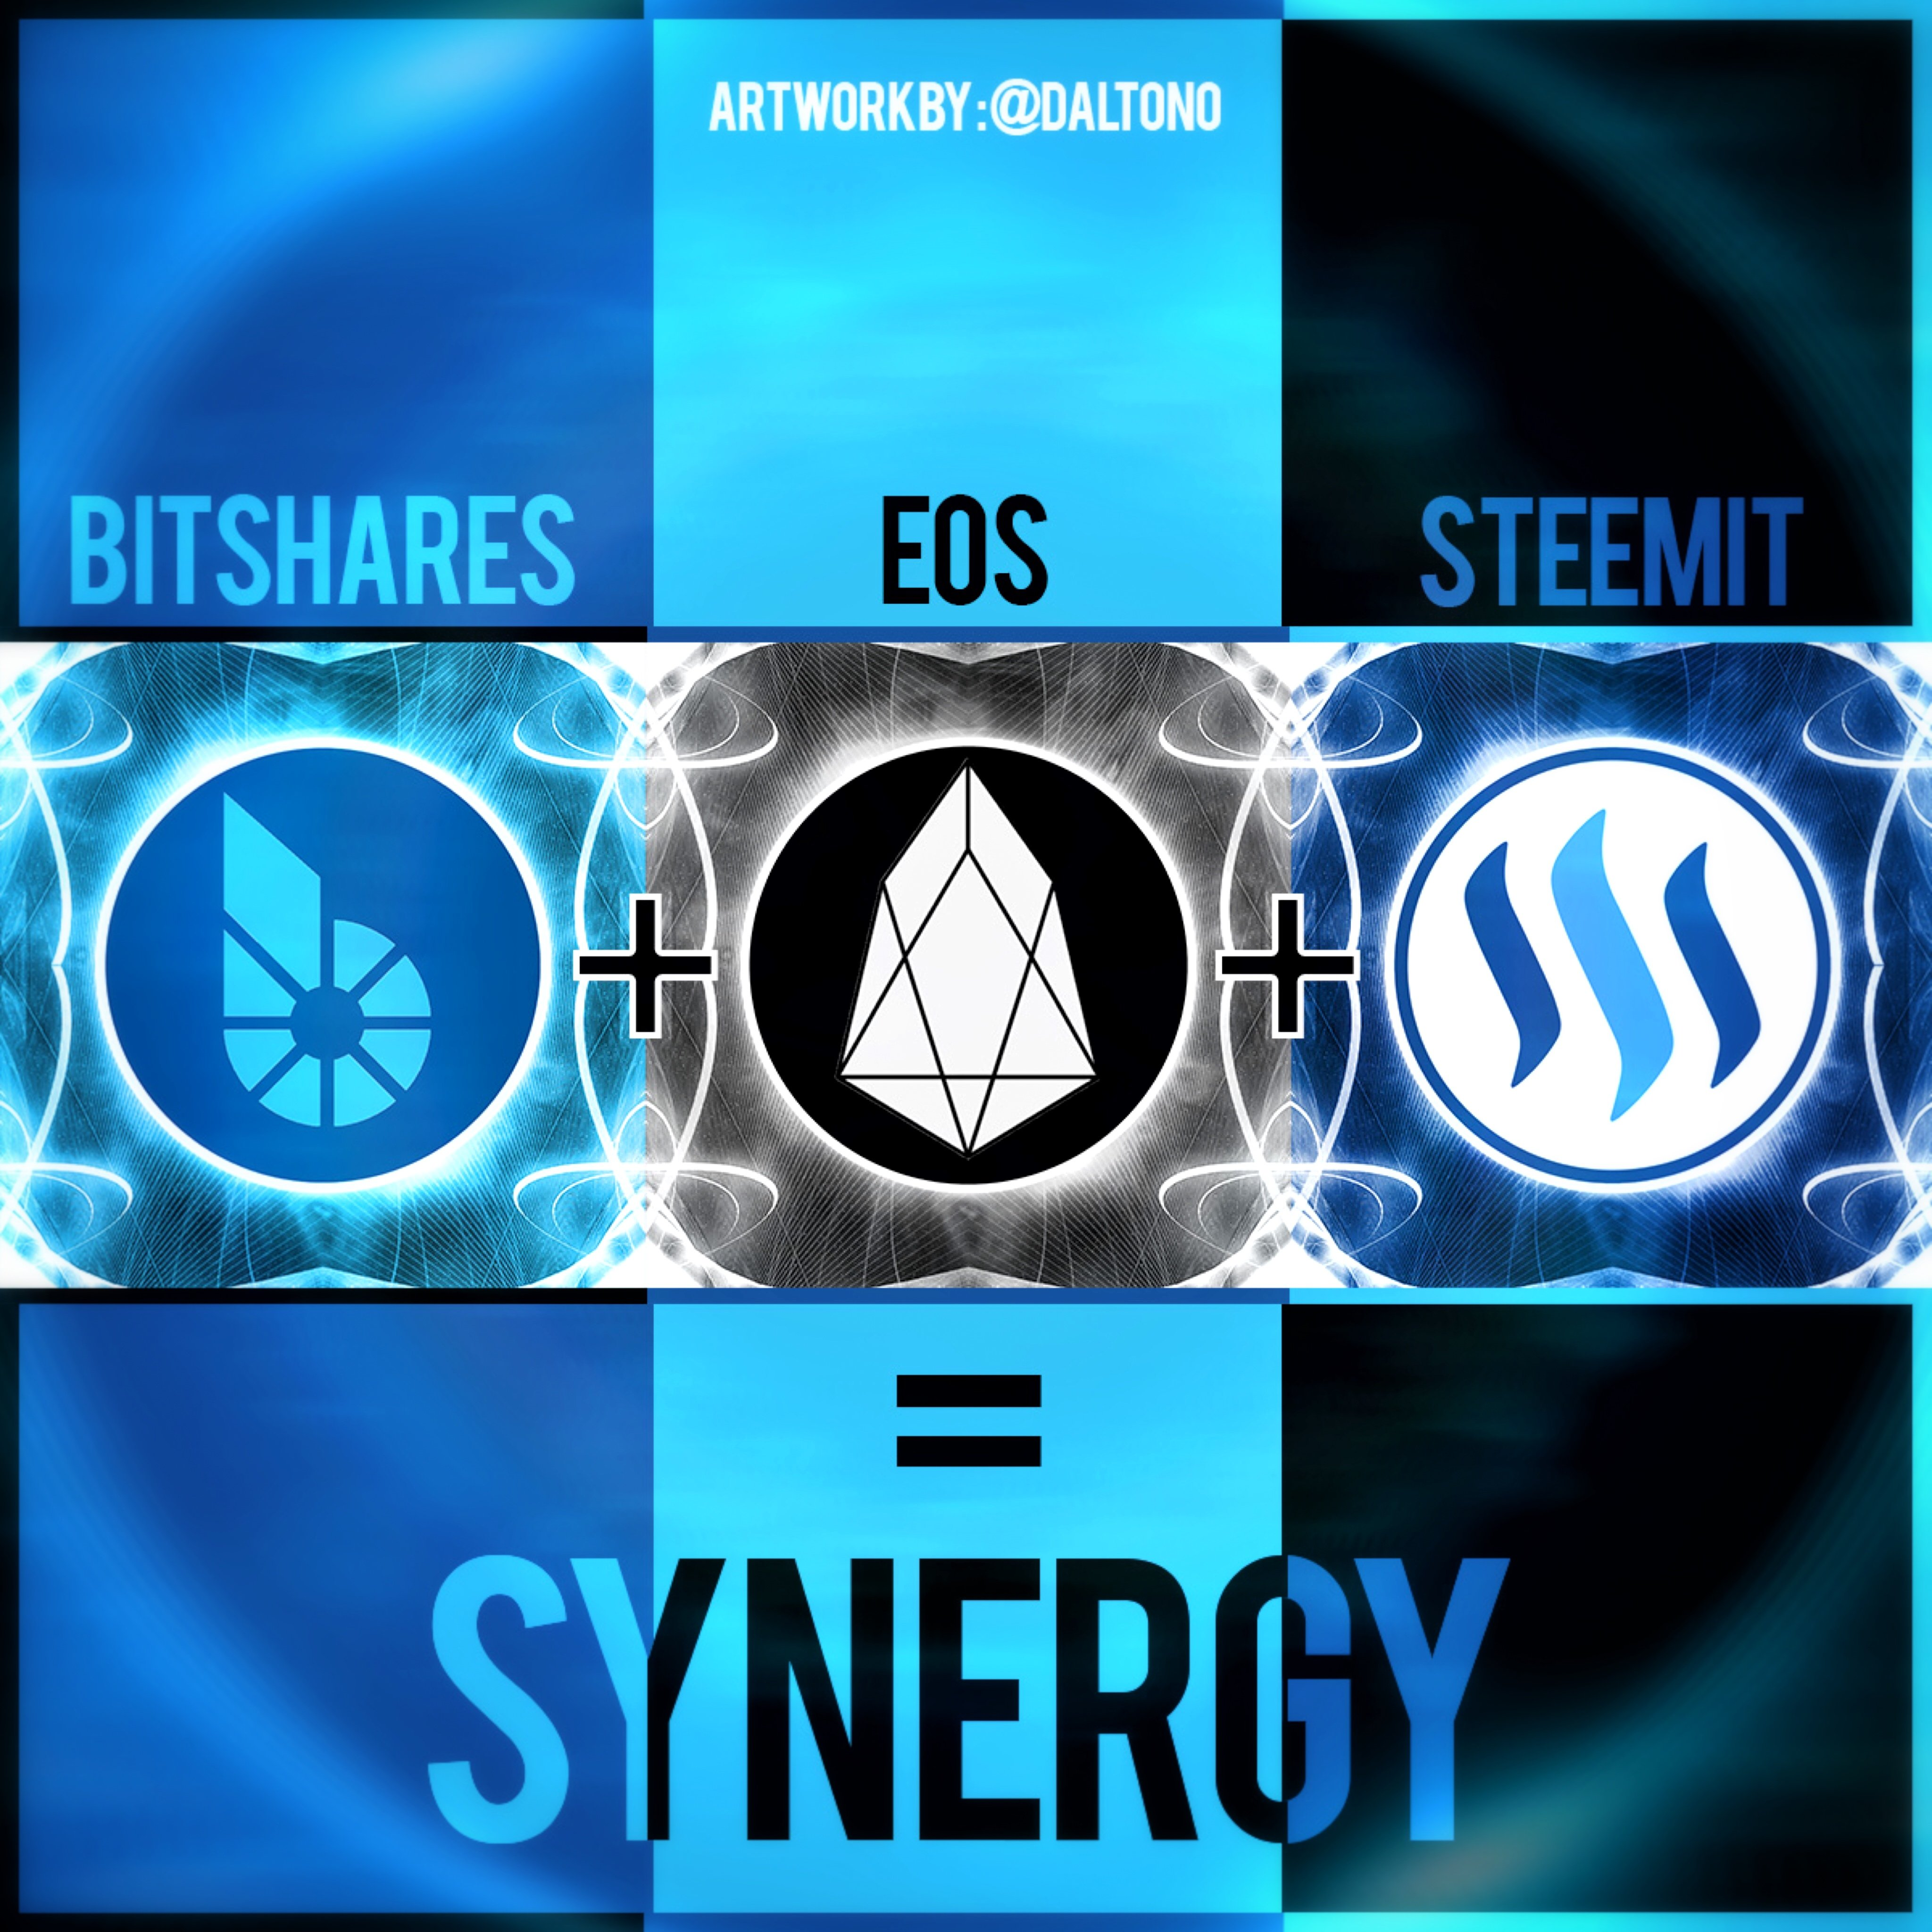 synergy-art-final.jpg